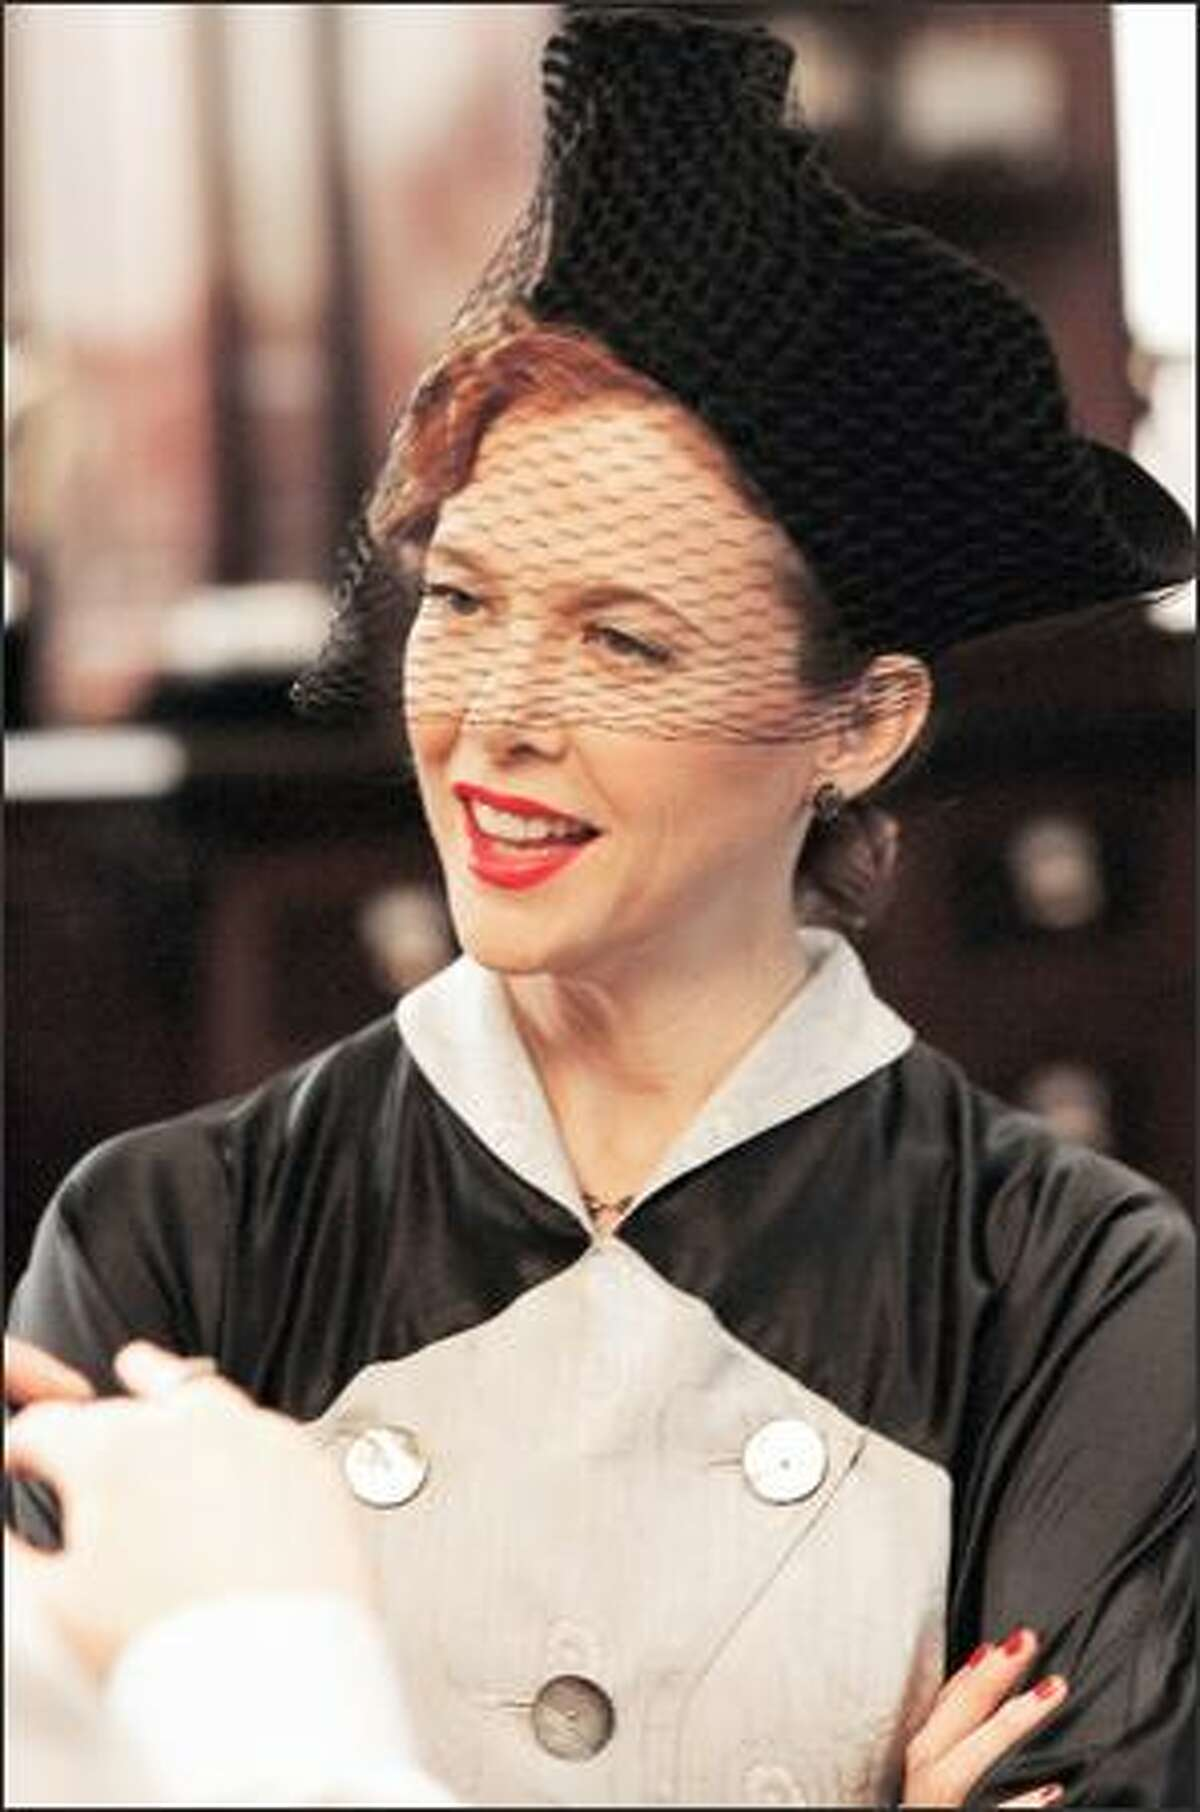 Annette Bening stars as Julia Lambert, a stage diva in 1930s London, in